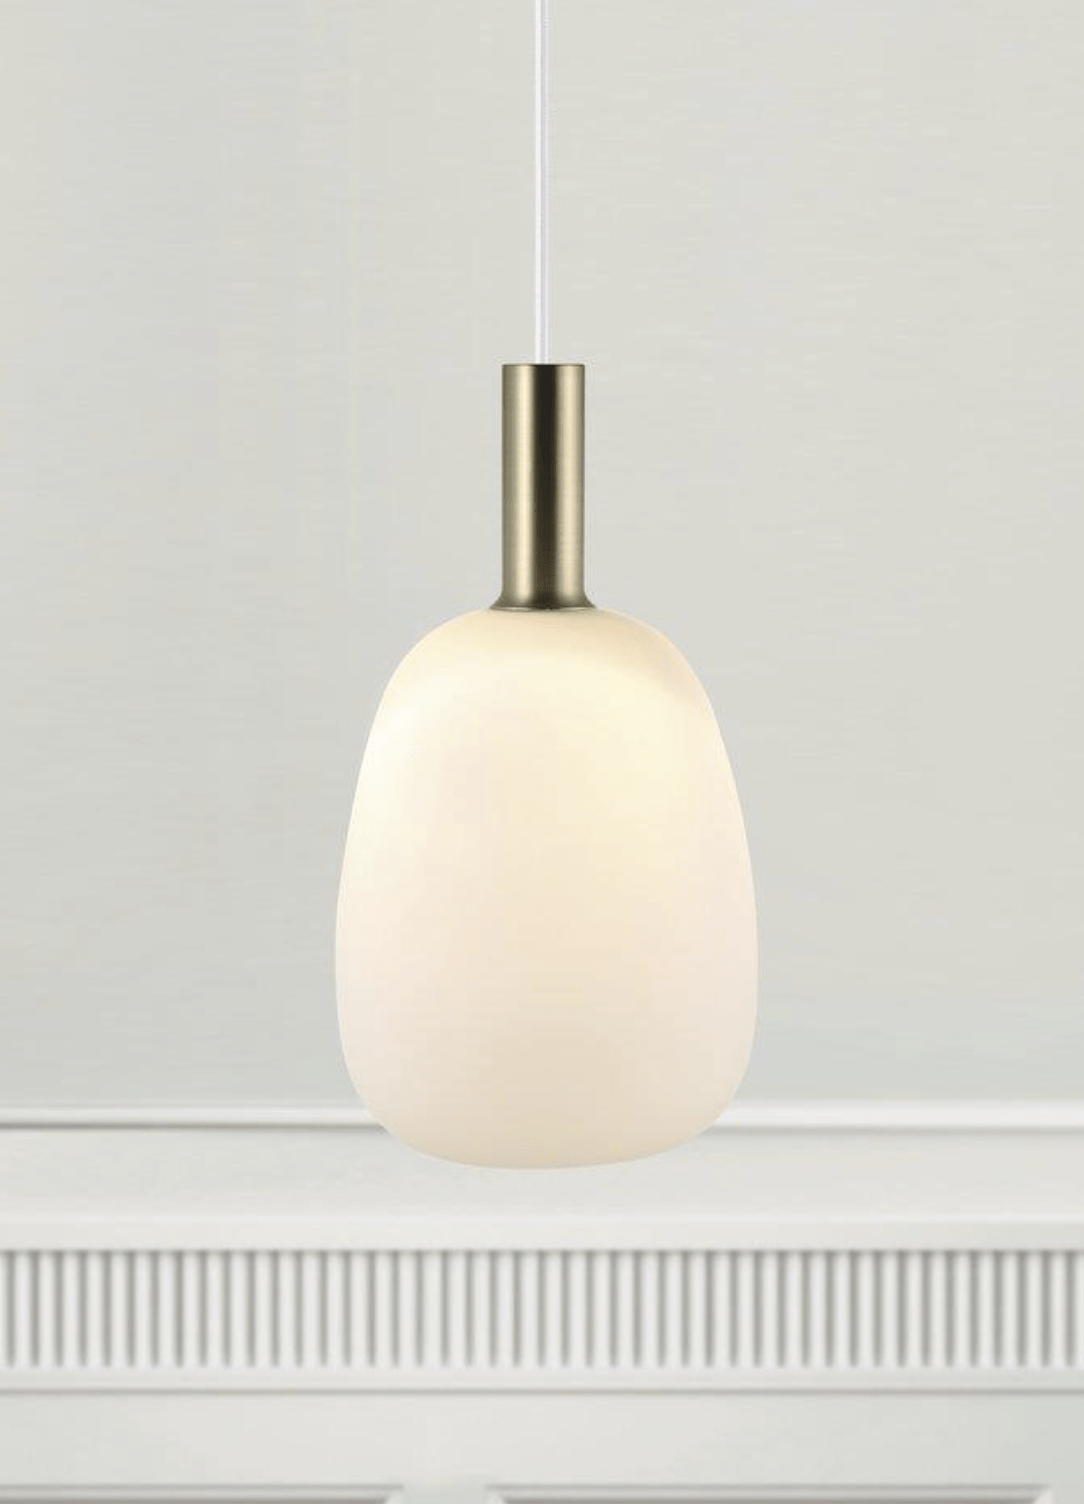 Interior Pendant Alton 23 Pendant Lighting Designer